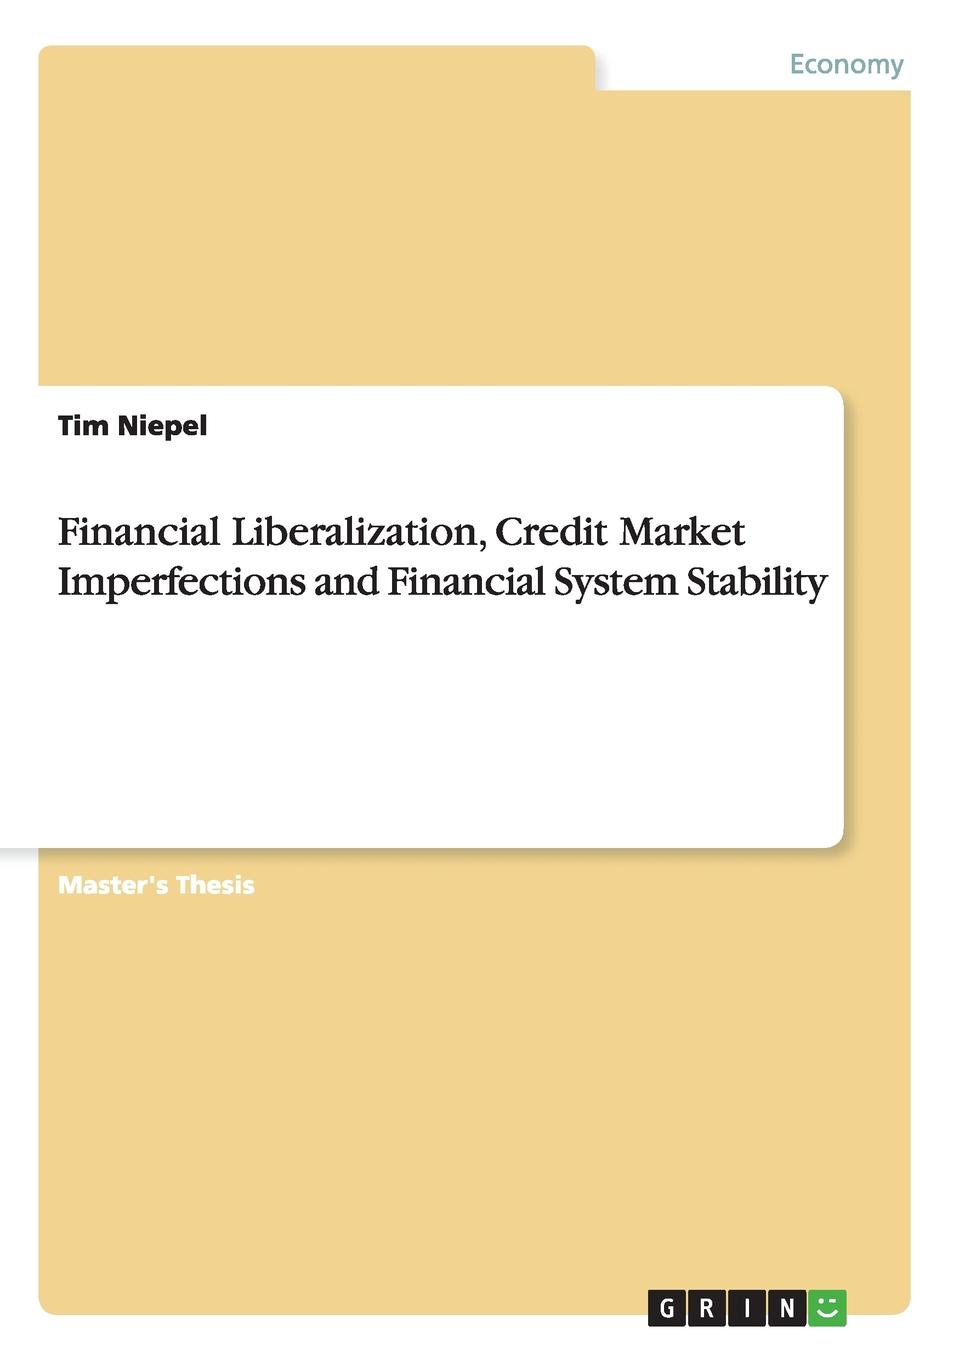 Tim Niepel Financial Liberalization, Credit Market Imperfections and Financial System Stability efficiency and competition